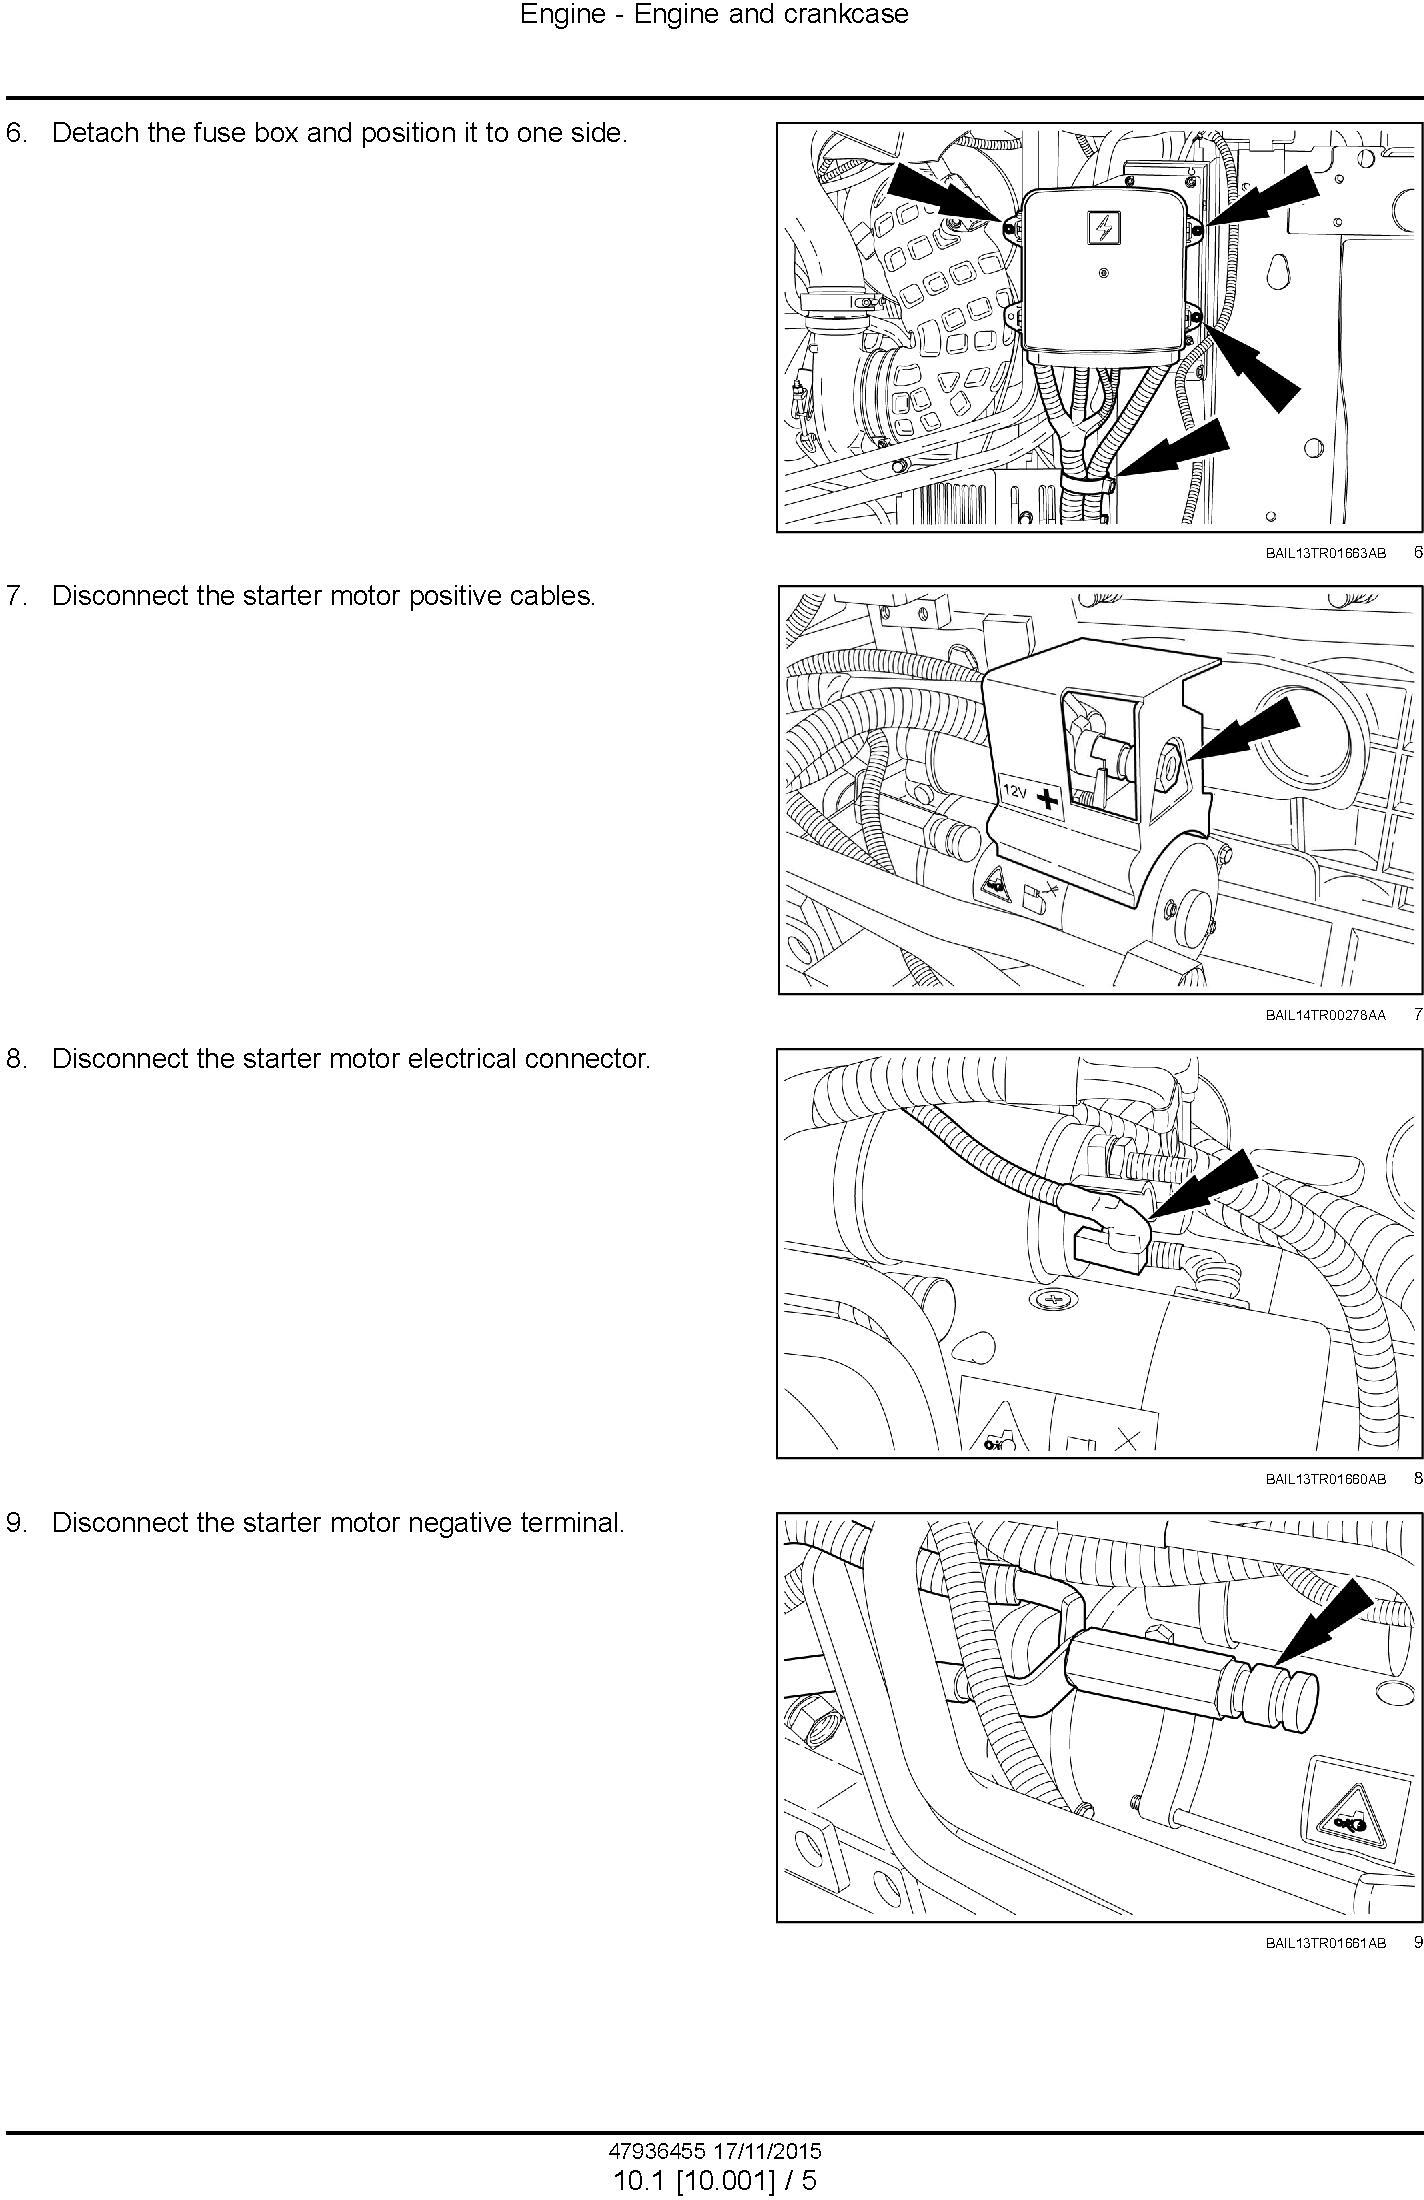 New Holland T7.230, T7.245, T7.260, T7.270 AutoCommand Tier 4B (final) Complete Service Manual (USA) - 1